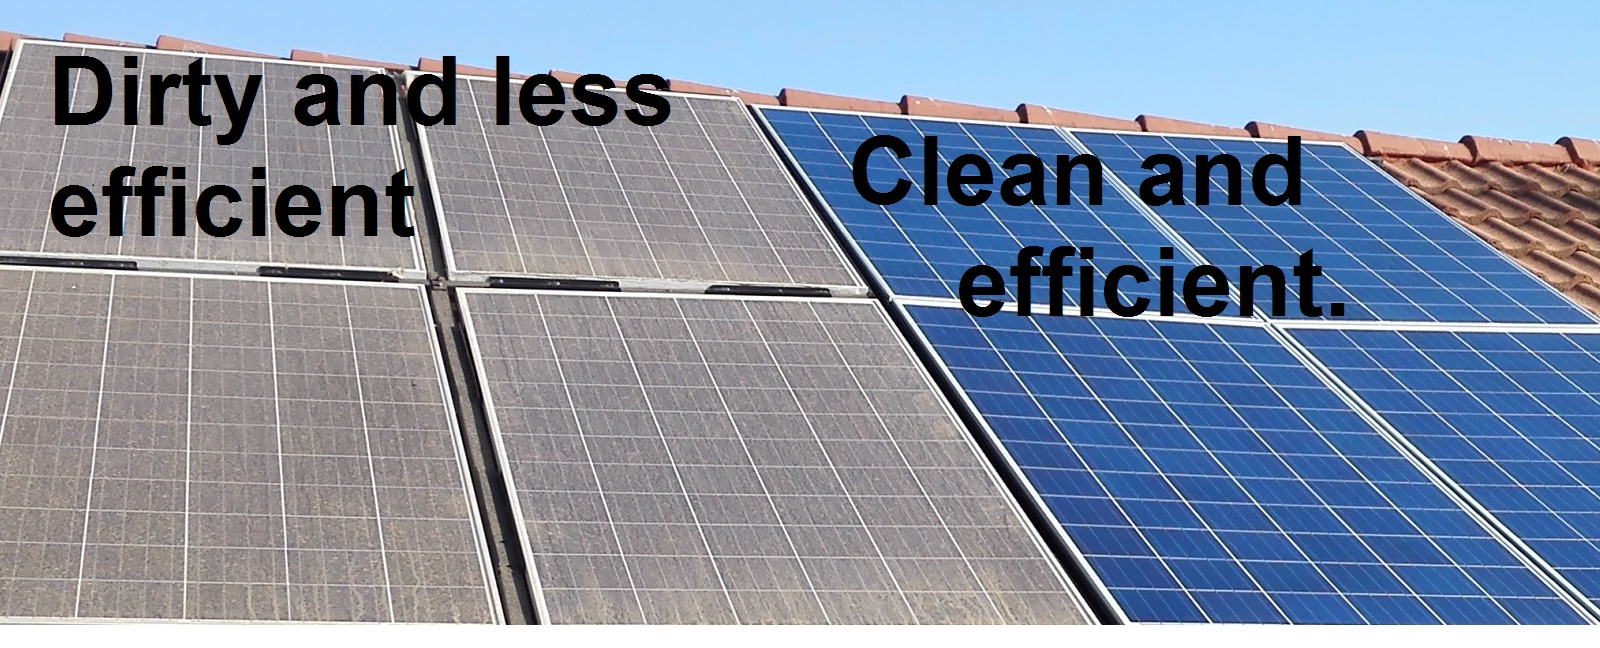 Clean panels for high efficiency.